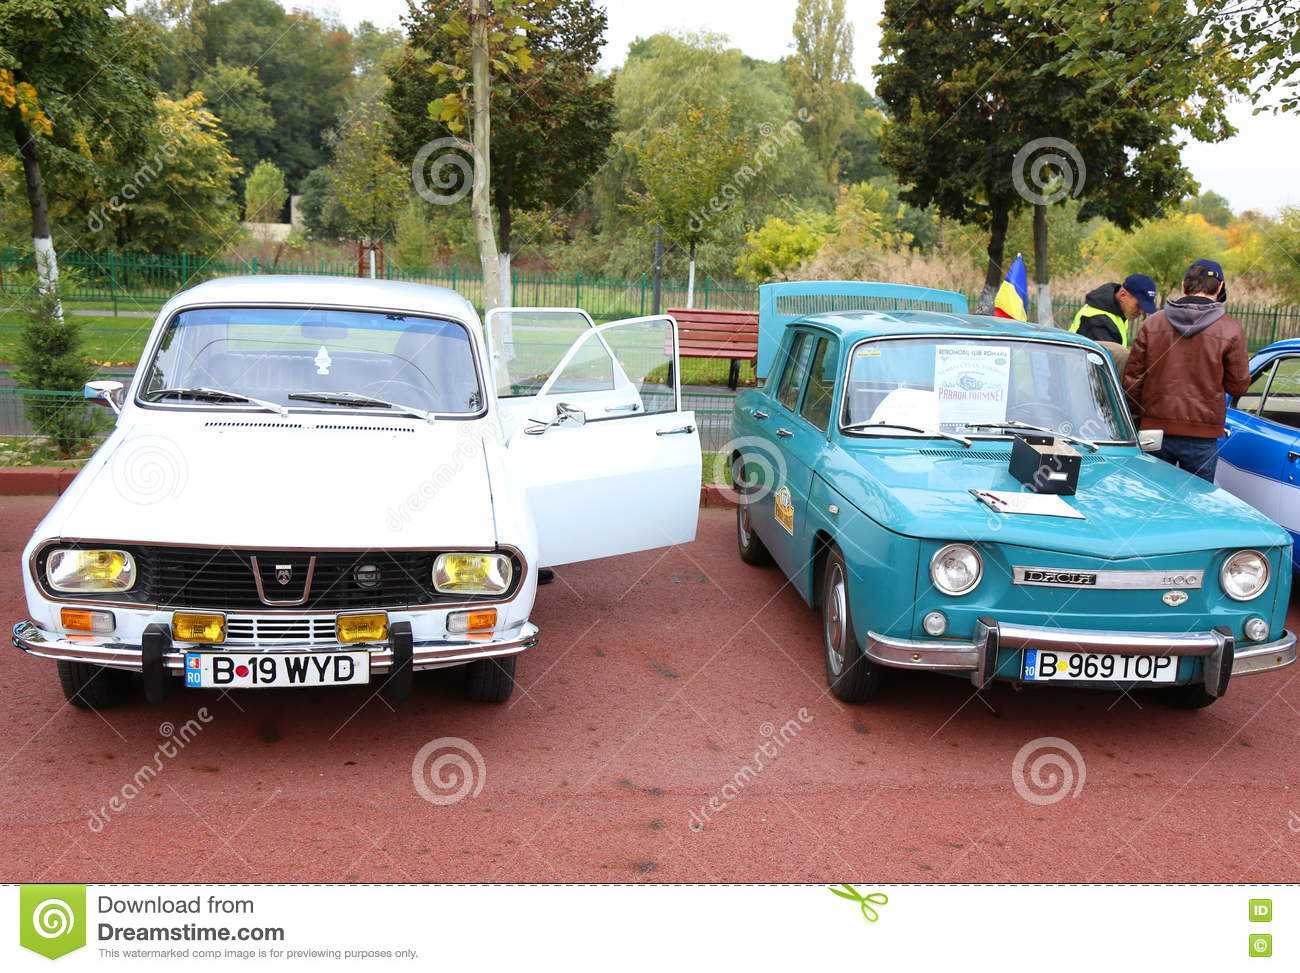 Dacia 1300 and 1100 editorial stock photo. Image of model - 79464693